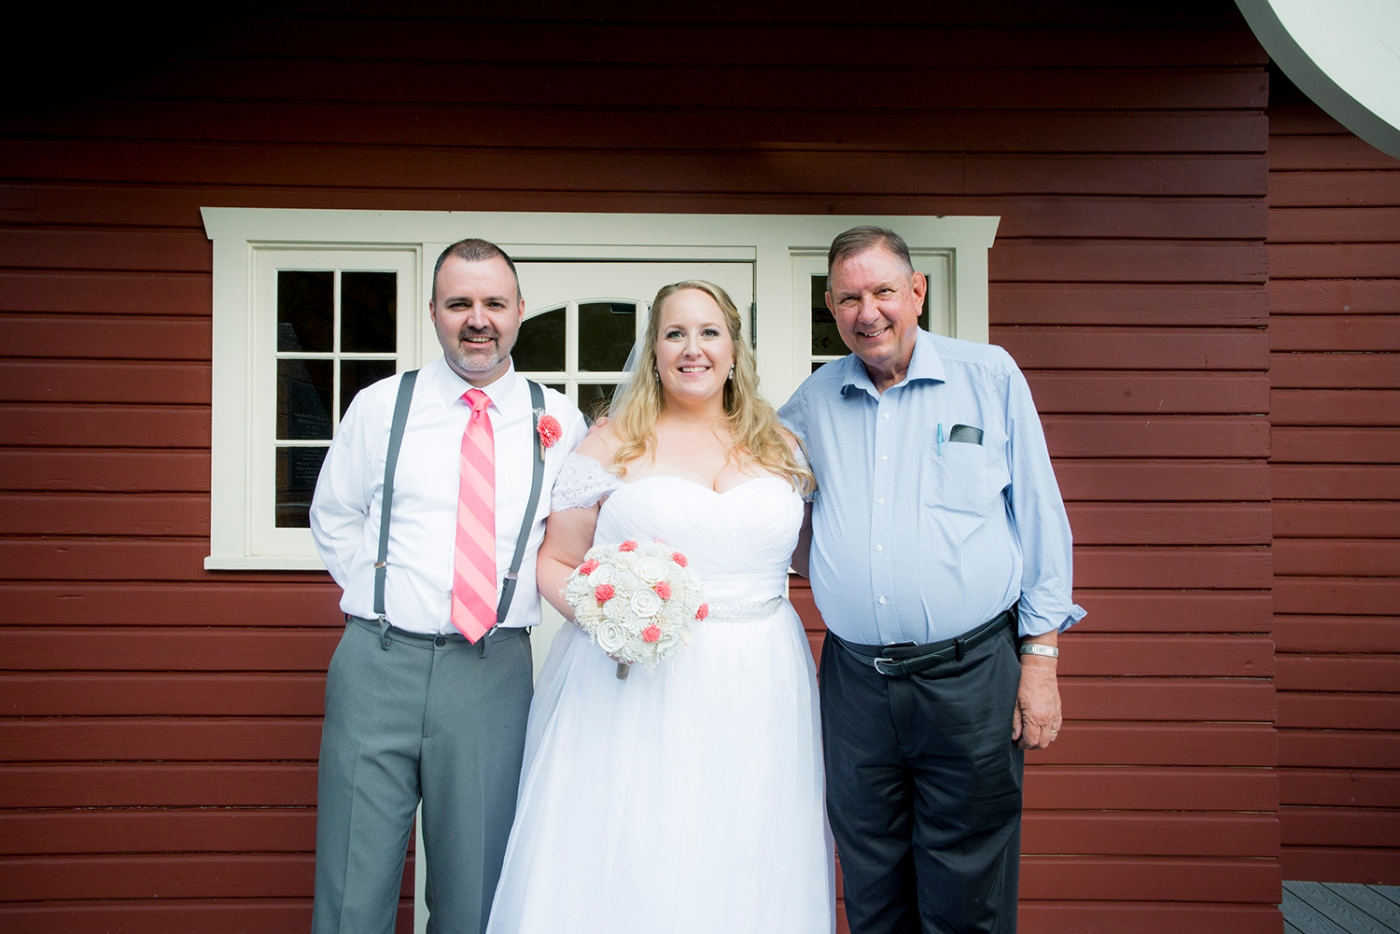 Jane_Speleers_Seattle_photography_Katie_and_Steve_2016_Des_Moines_Marina_Wedding_DSC_2100